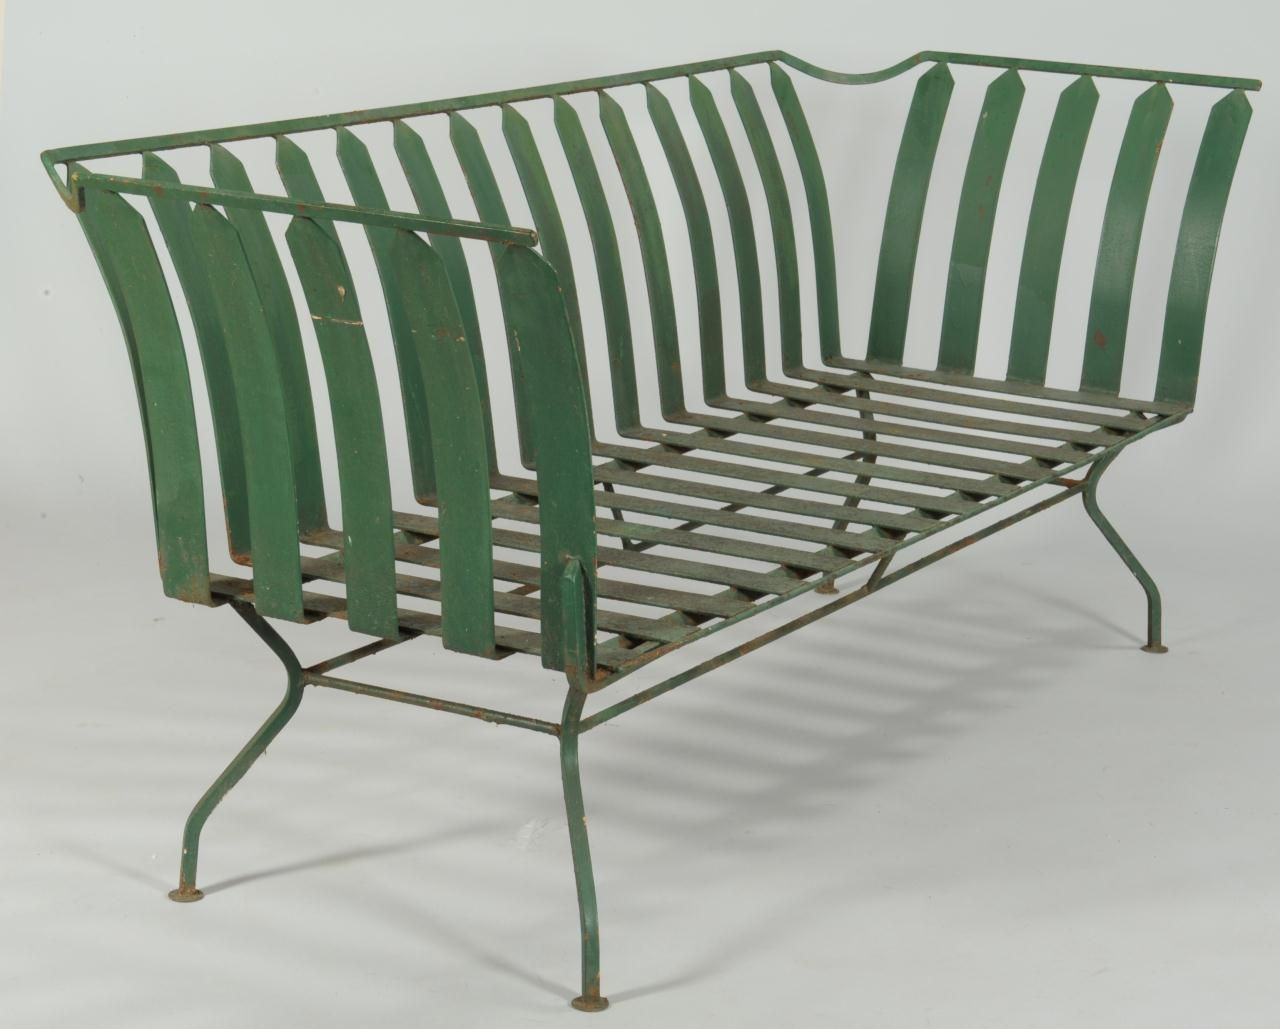 Lot 589 French Art Deco Patio Furniture Settee